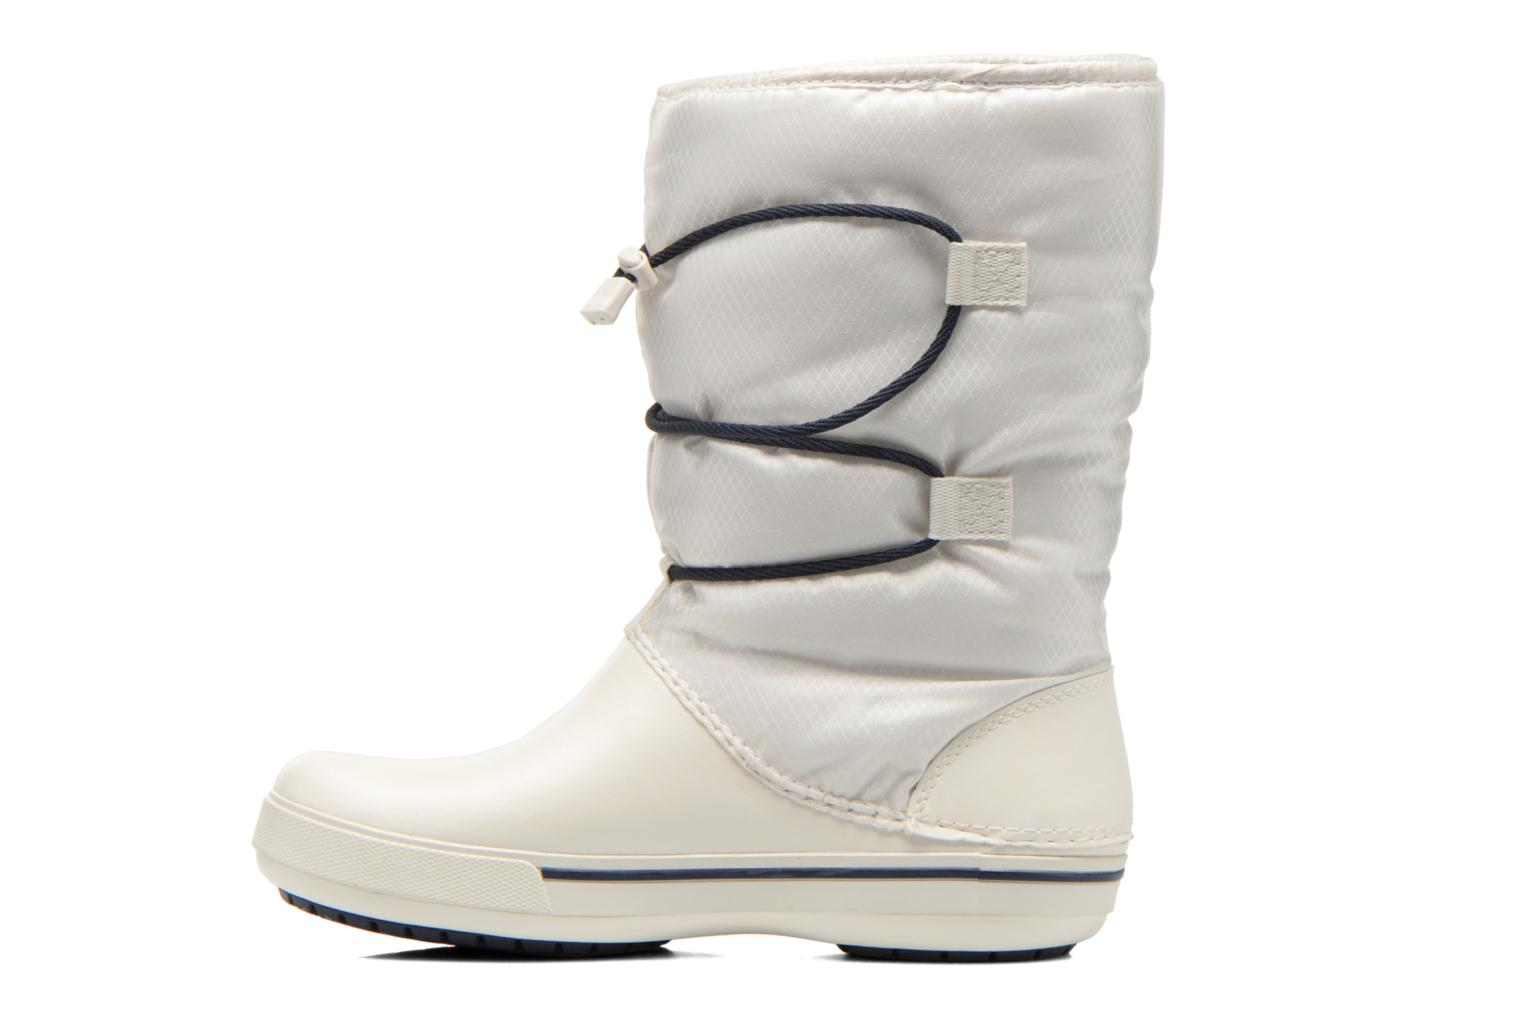 Bottines et boots Crocs Crocband II.5 Cinch Boot W Blanc vue face